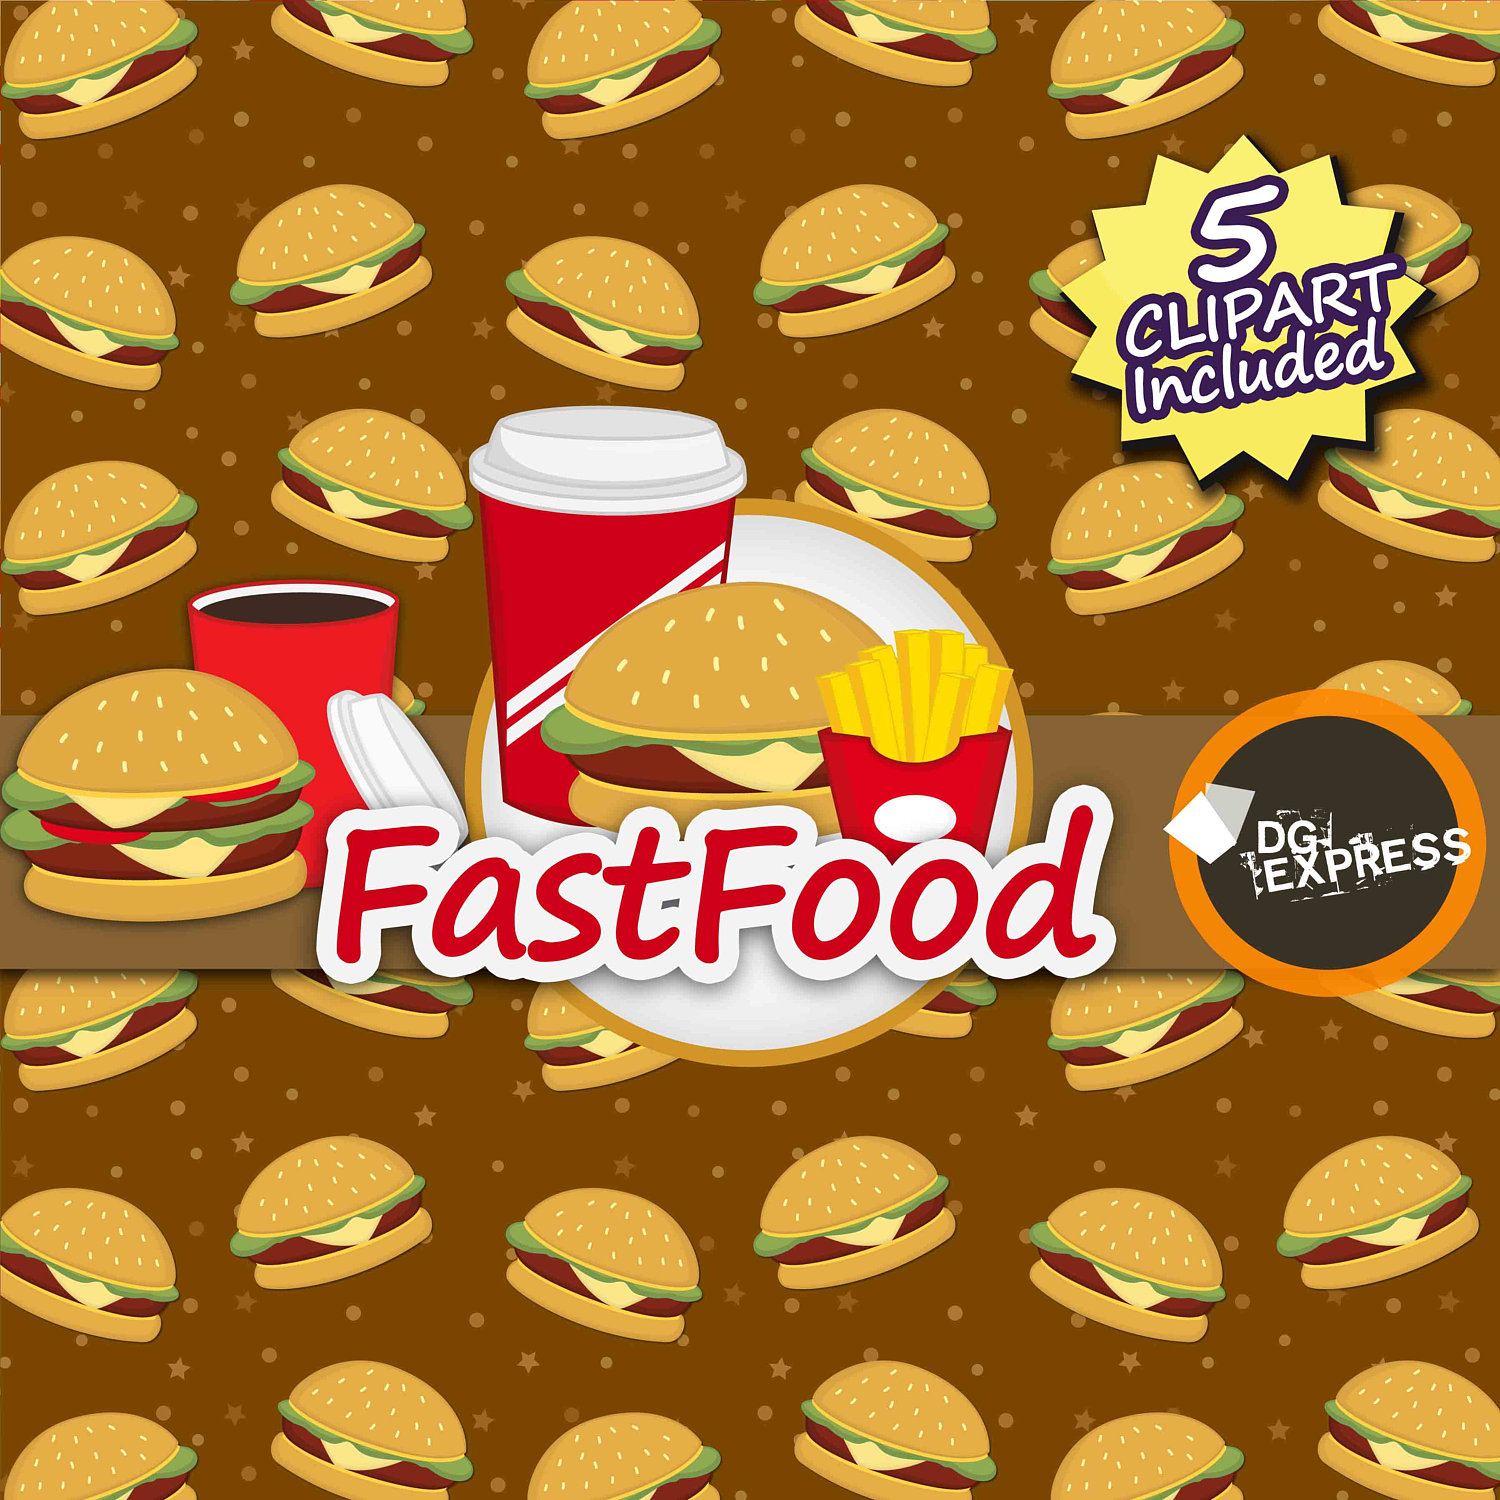 Burger clipart digital. Fastfood paper this is